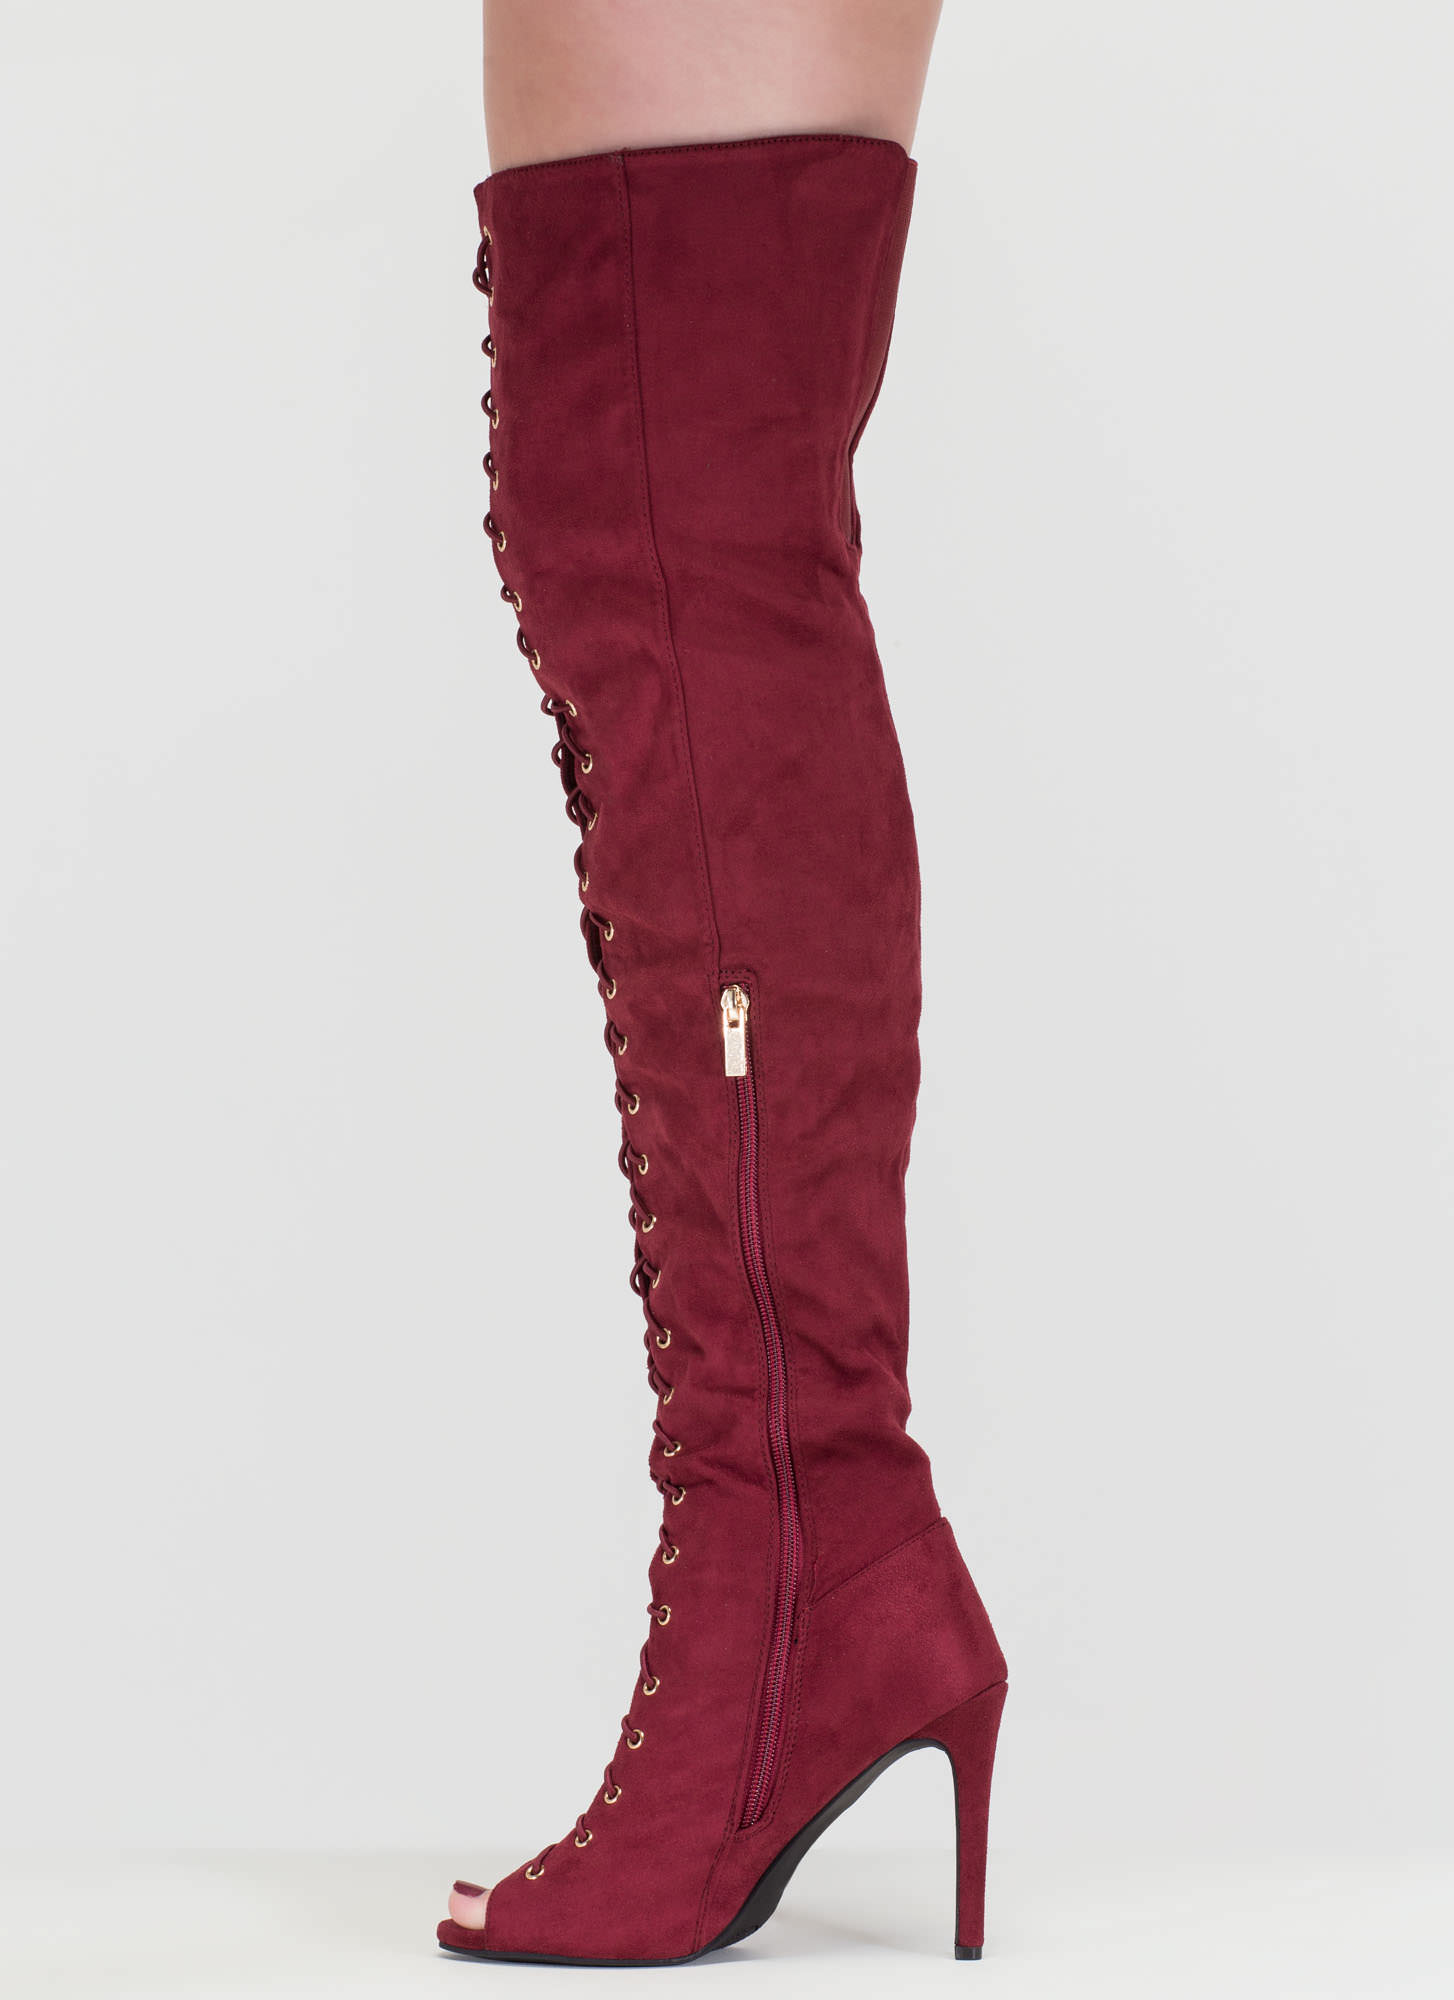 True Story Over-The-Knee Laced Boots BURGUNDY